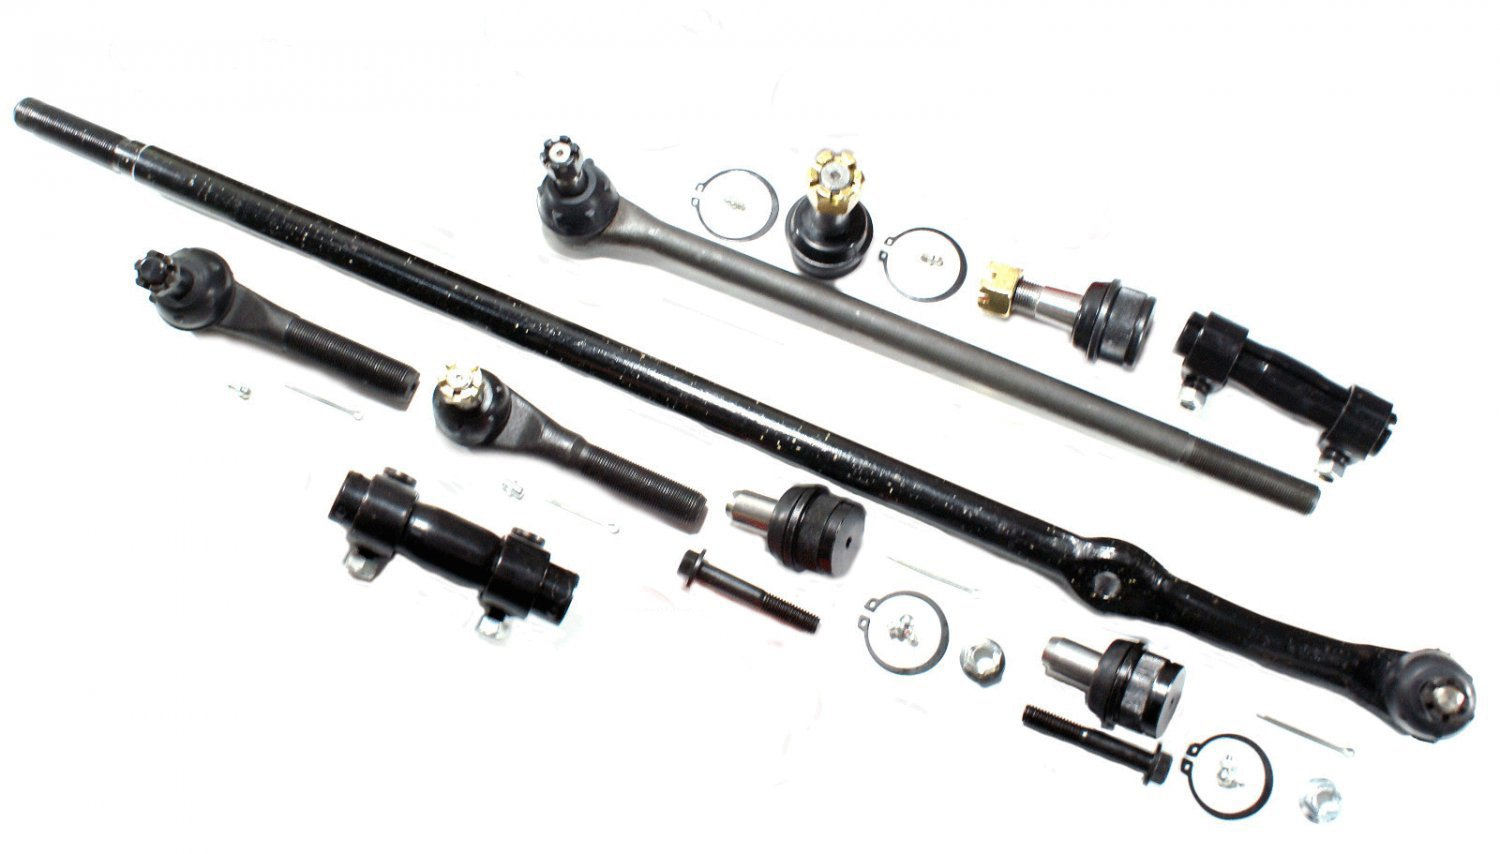 96 Ford F150 Parts New 87-96 Ford F-150 Suspension & Steering Parts Tie Rod End Ball ...